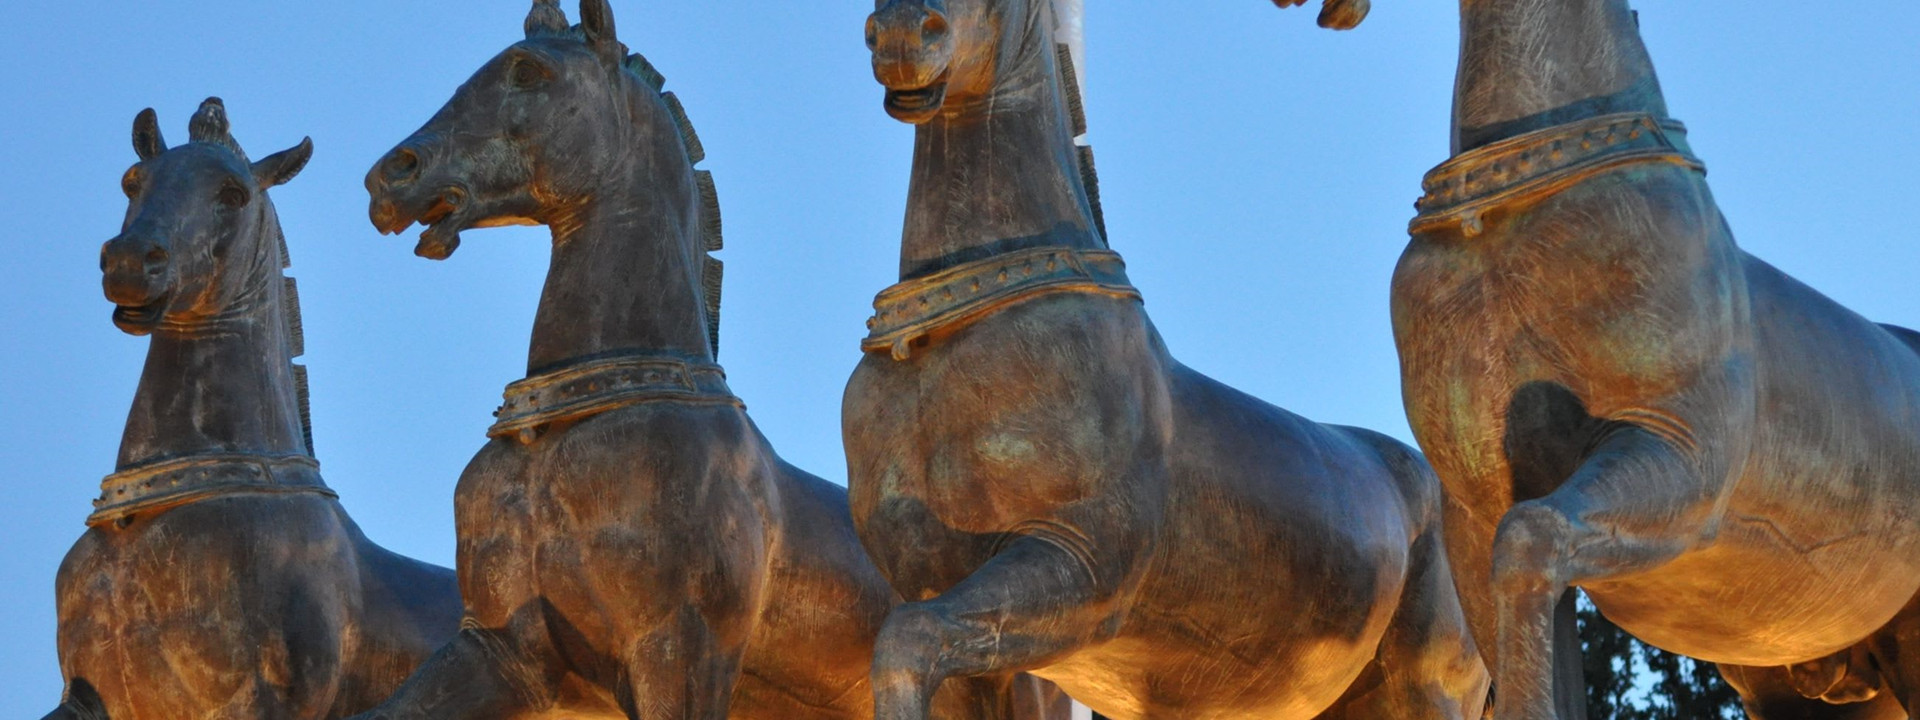 Gracing the entrance of Greenwood Memorial Park, the Greenwood Quadriga stands as an historic symbol of Victory.